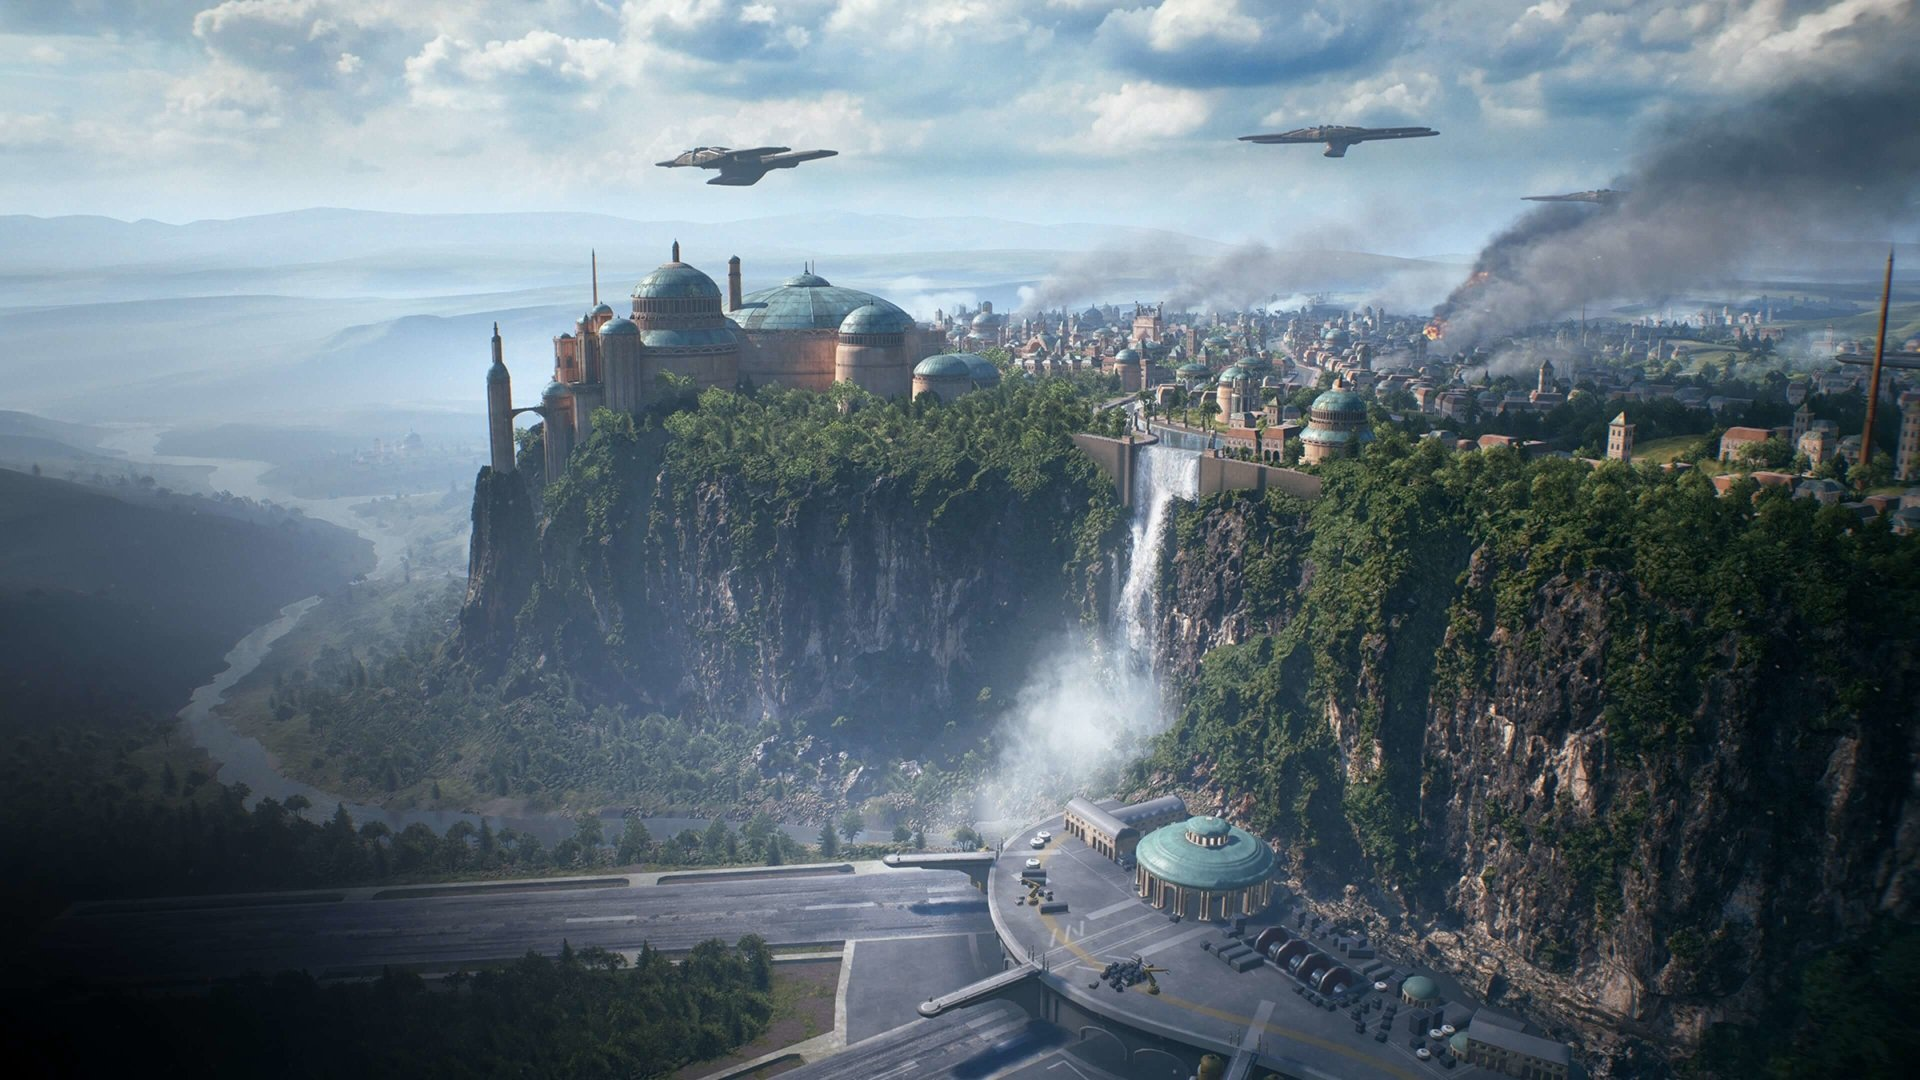 7 Naboo Star Wars HD Wallpapers Background Images   Wallpaper 1920x1080